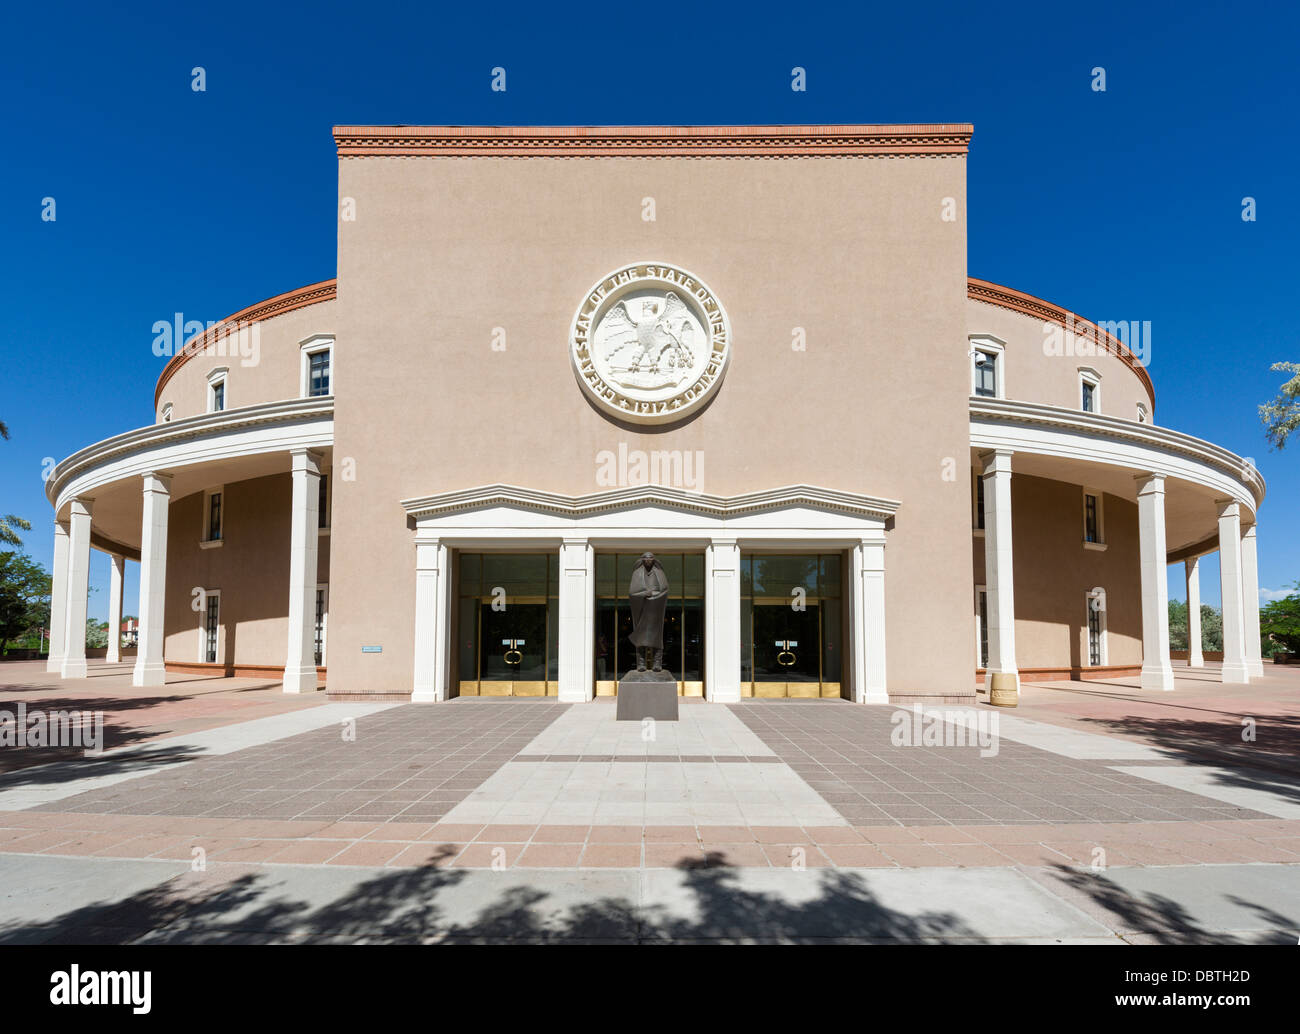 The New Mexico State Capitol building, Santa Fe, New